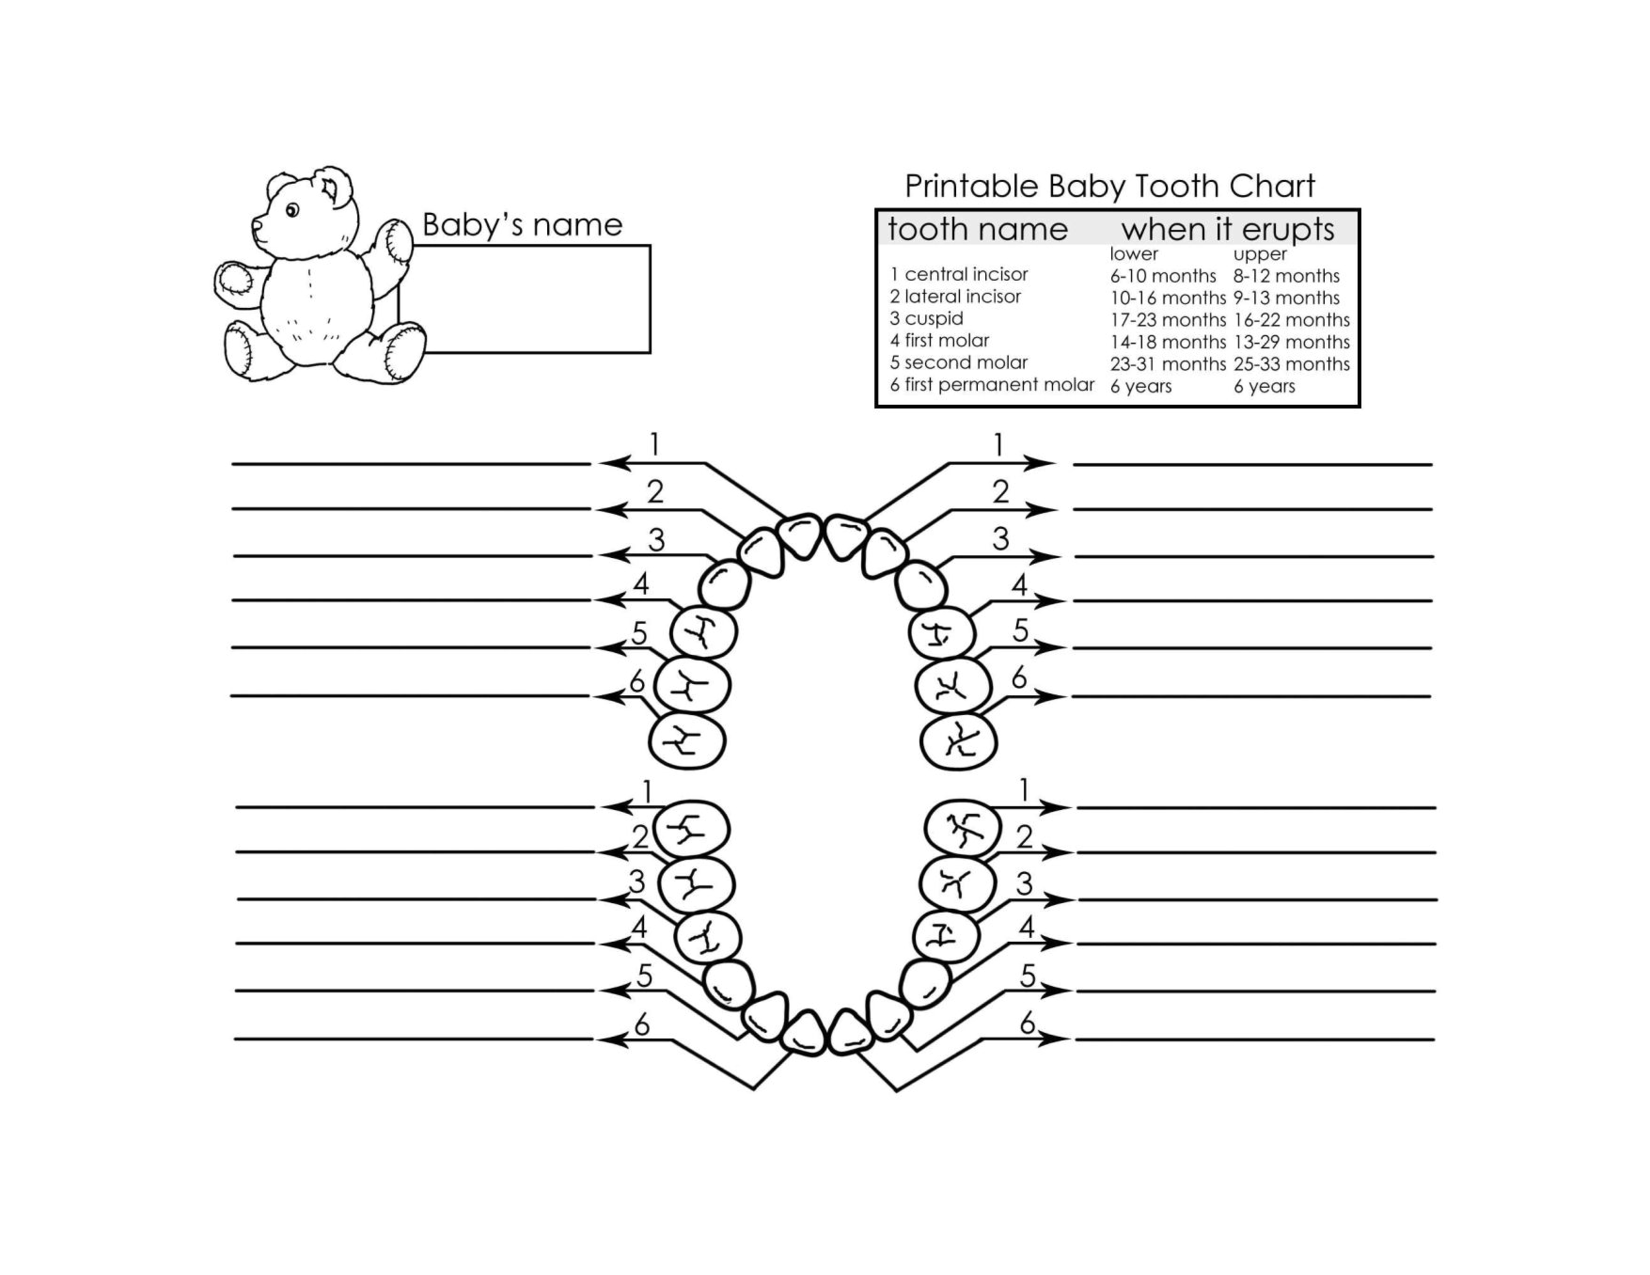 Baby teeth chart template | For Baby | Pinterest | Tooth chart ...